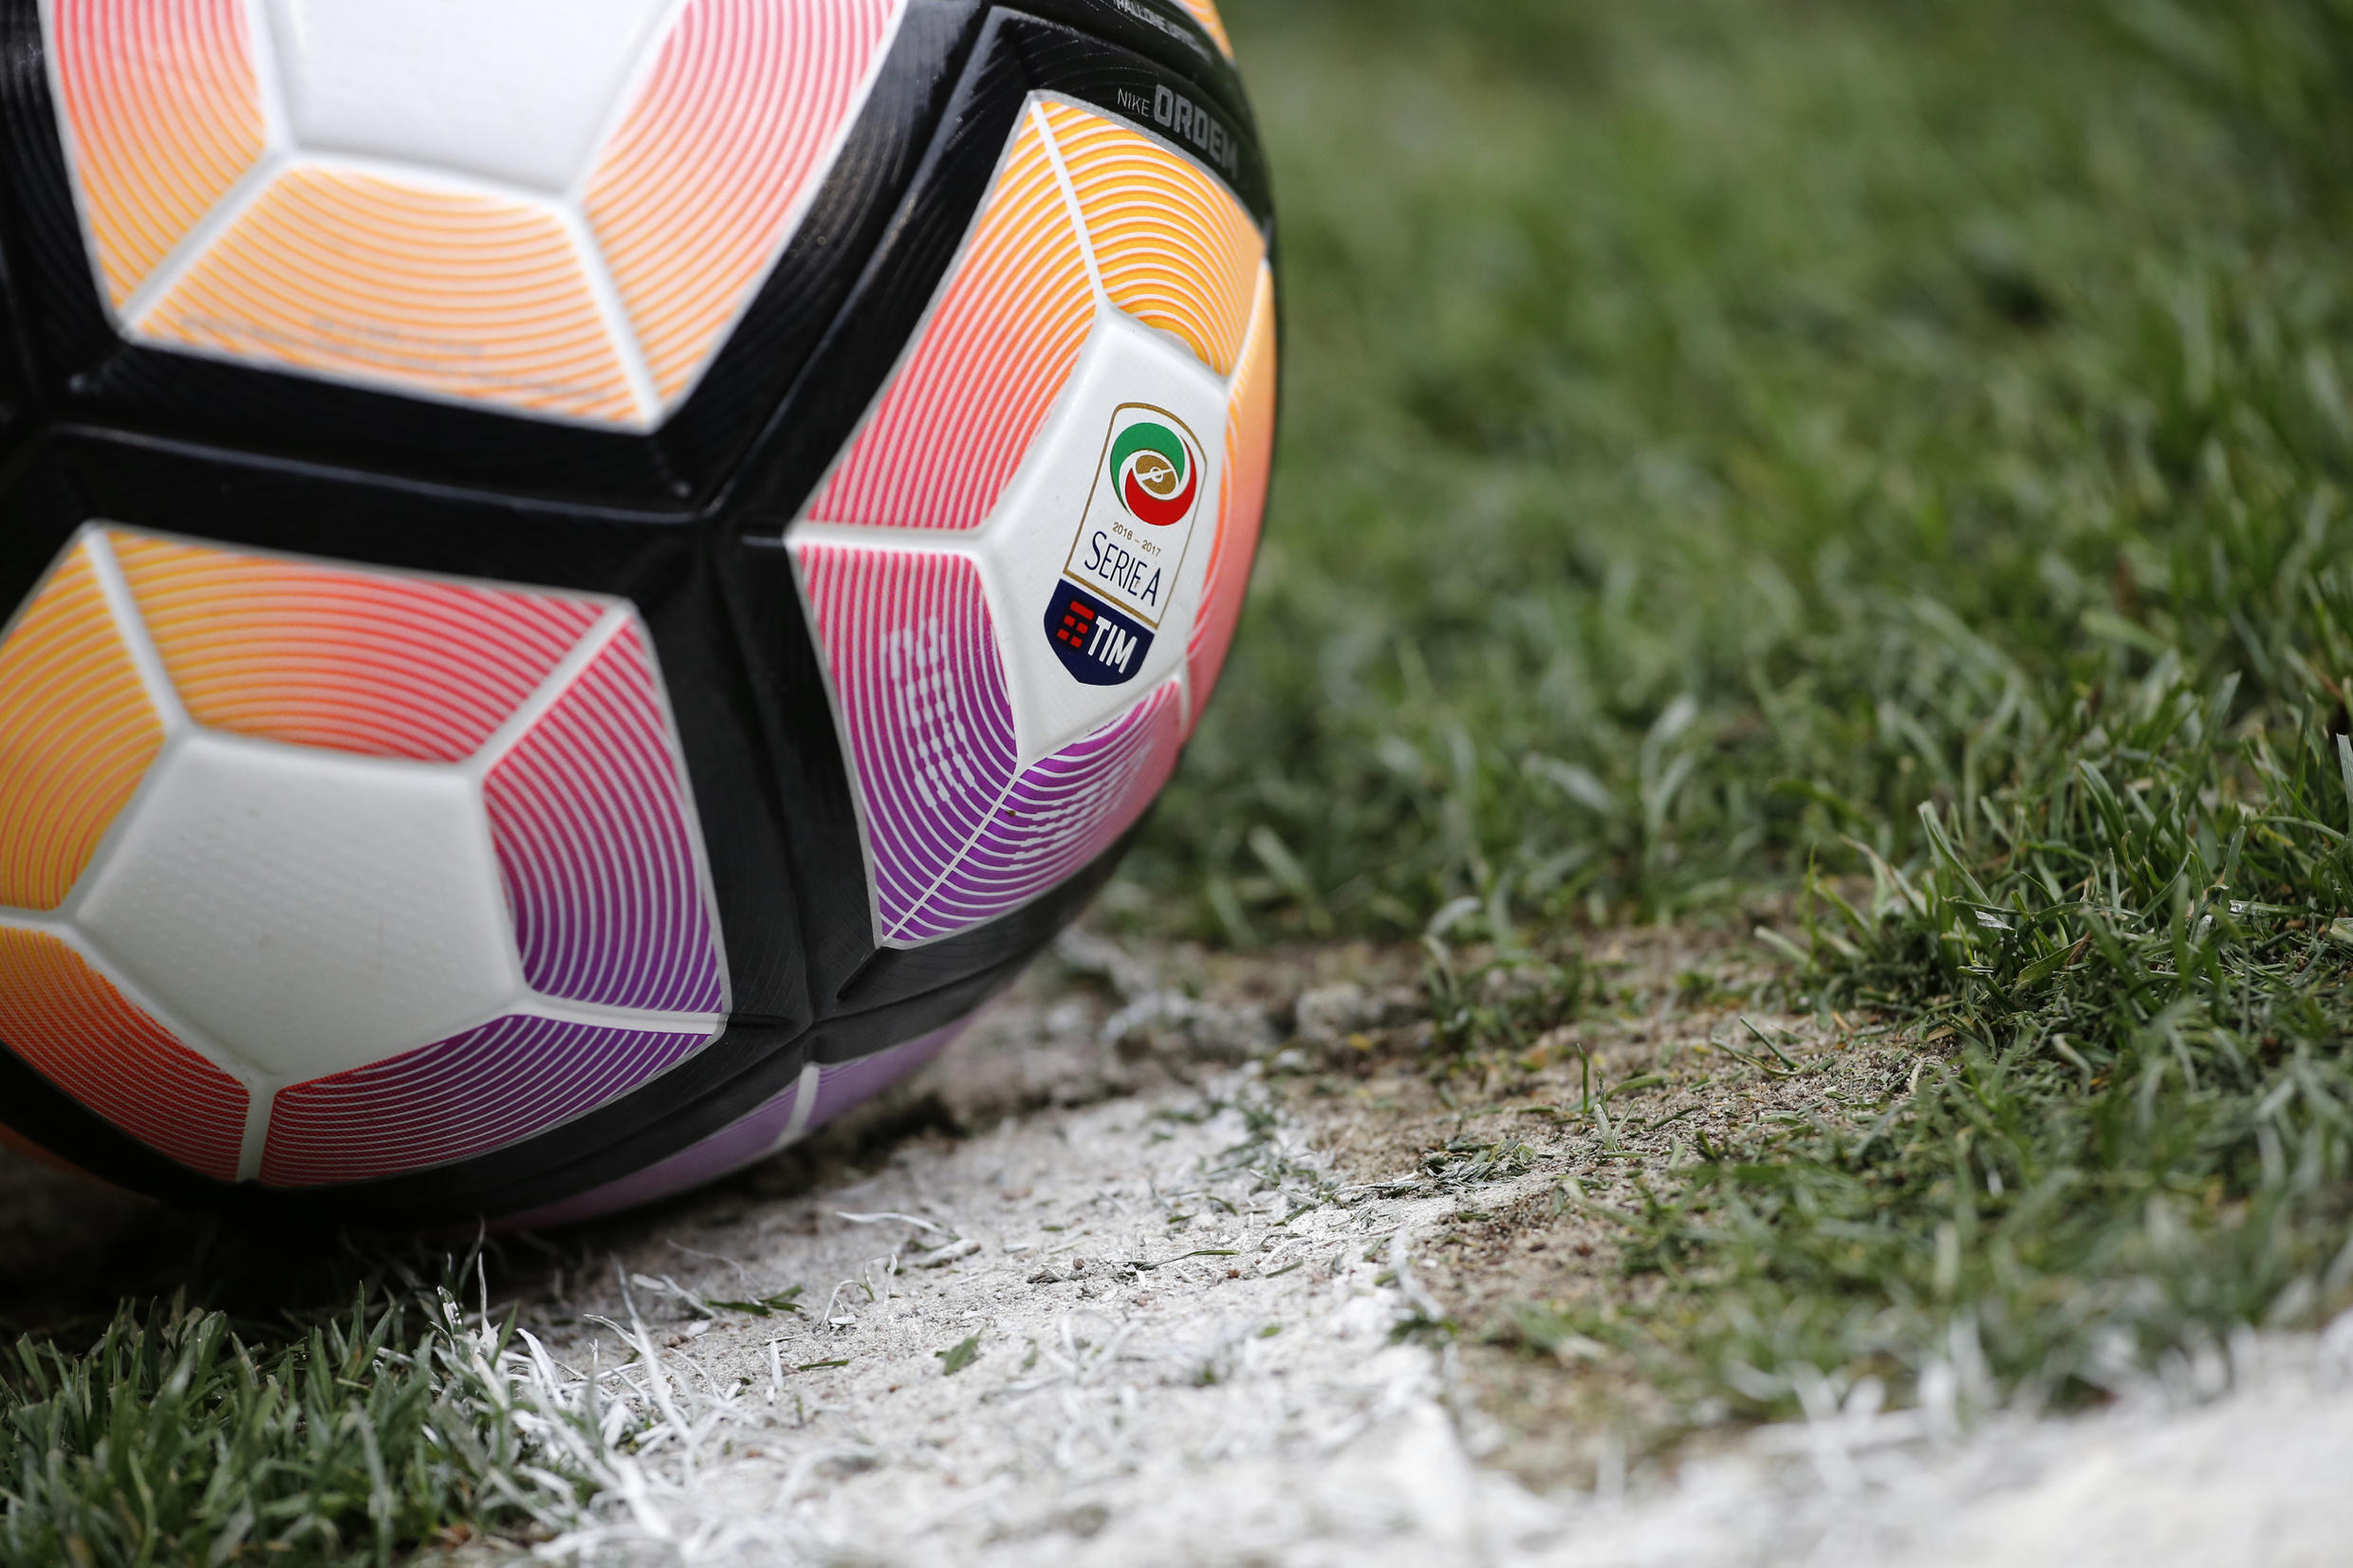 Football has been suspended in Italy since March 9, 2020.